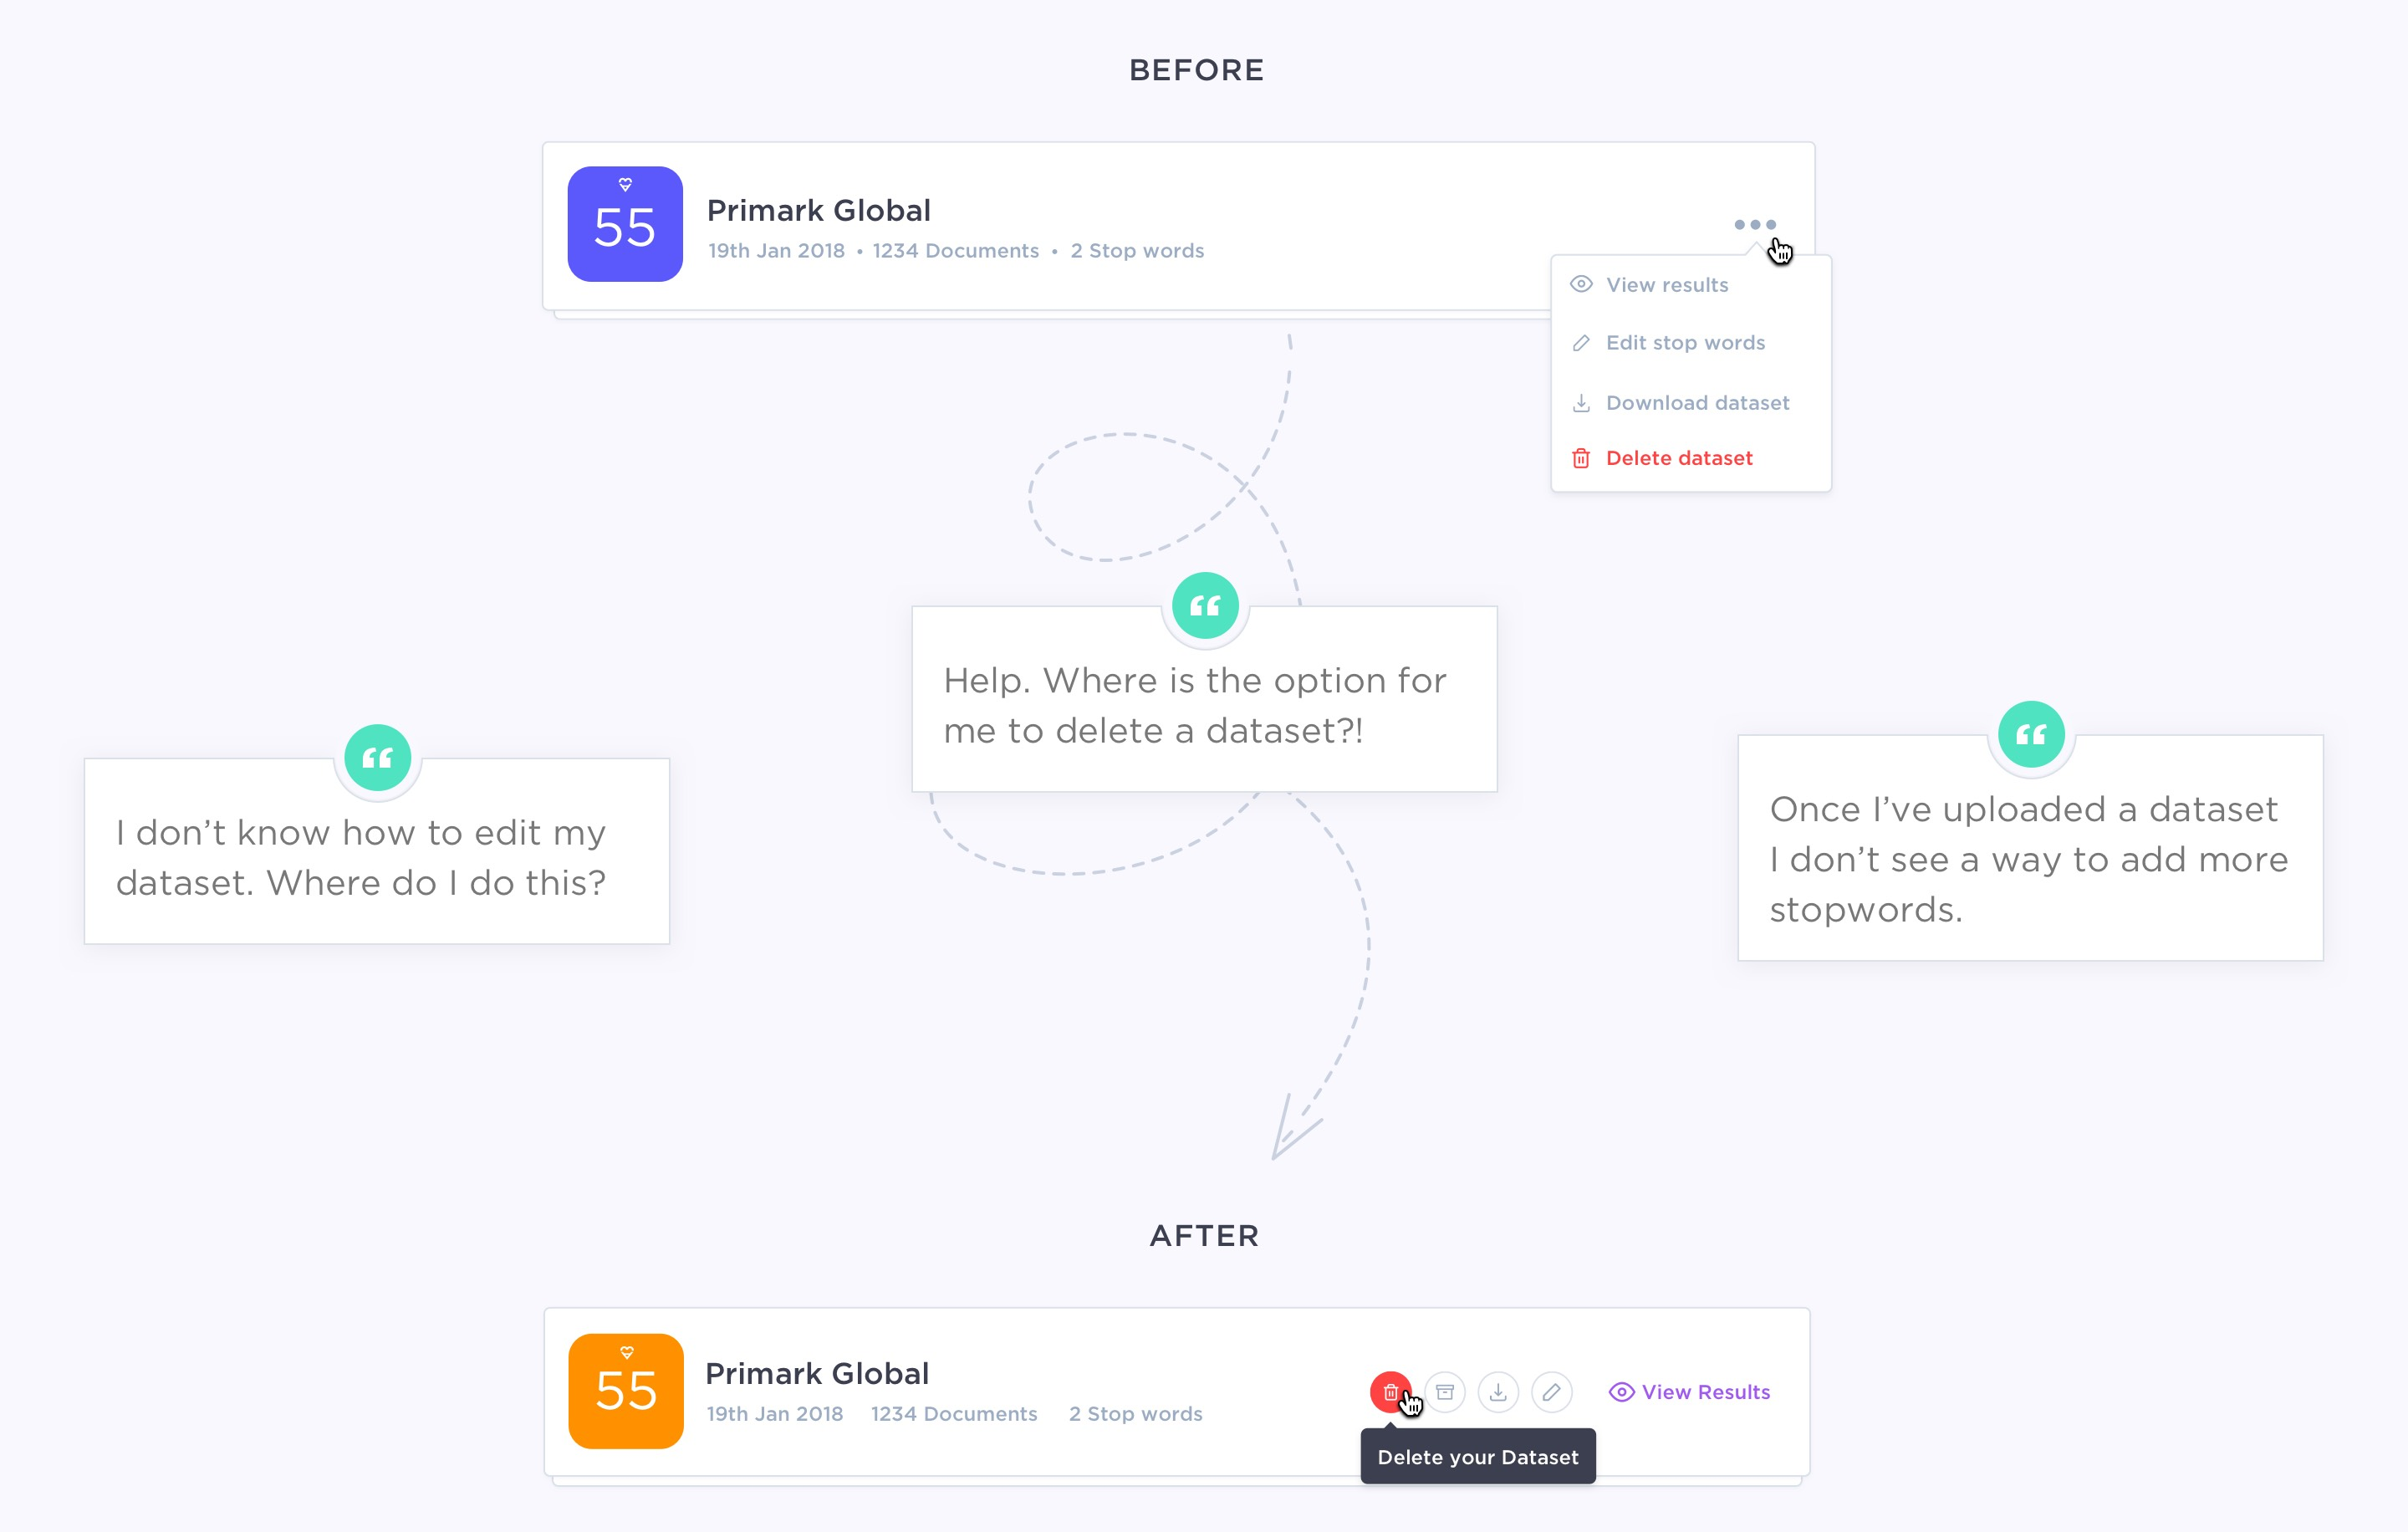 Adoreboard Emotics customer feedback